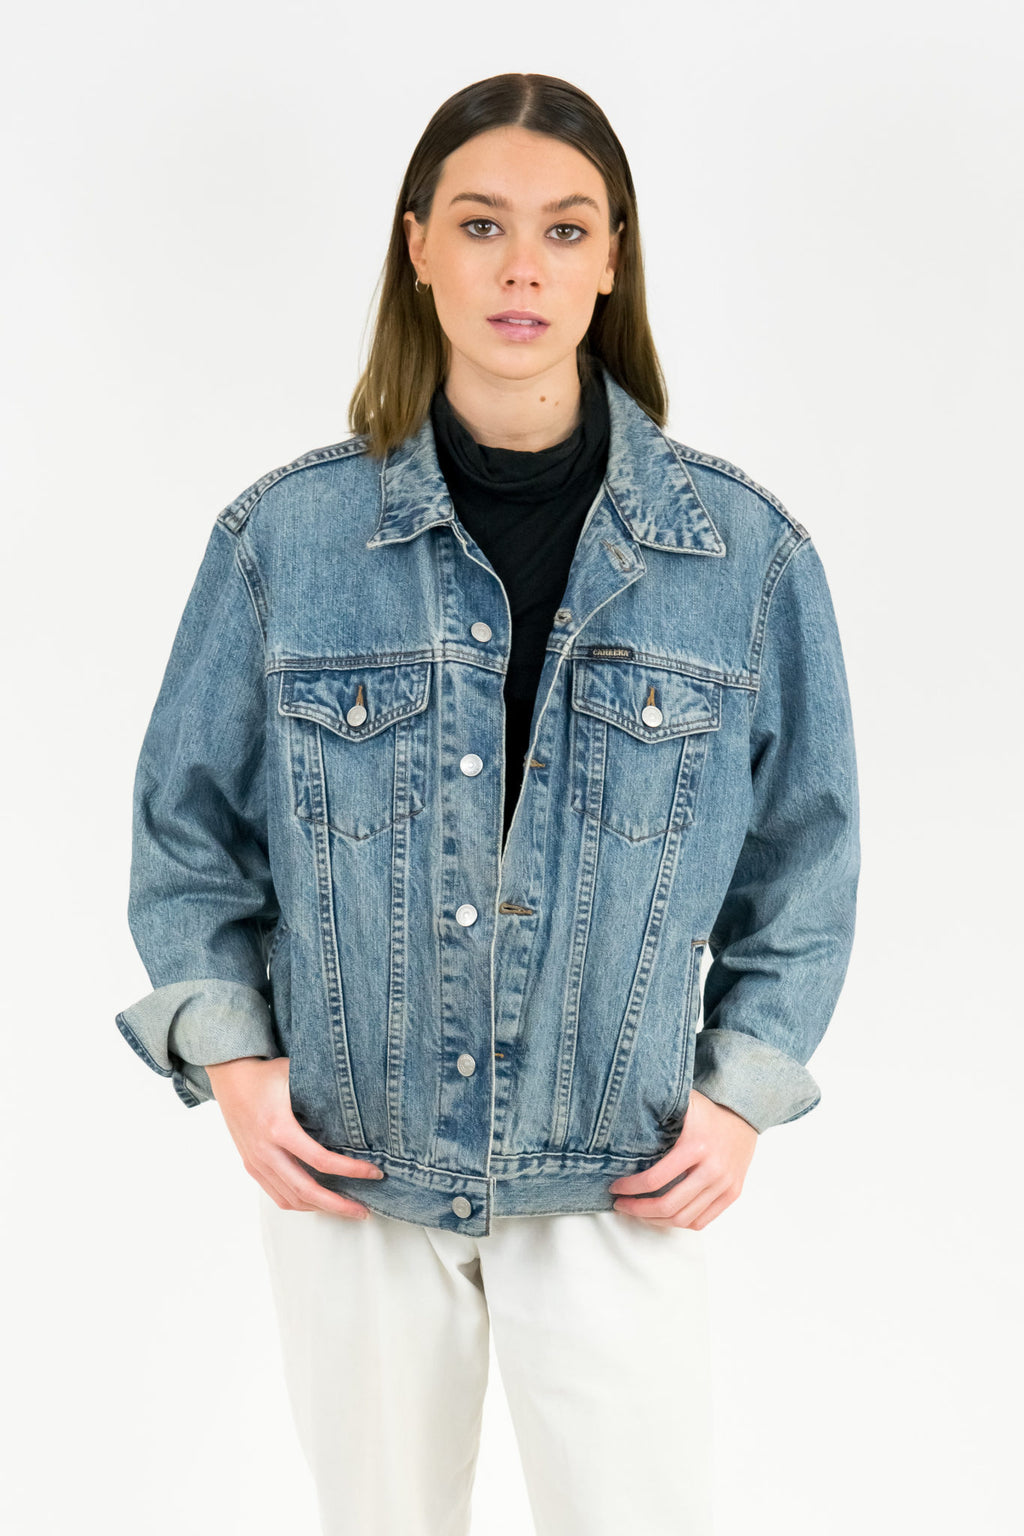 Vintage Carrera Denim Jacket / Size M